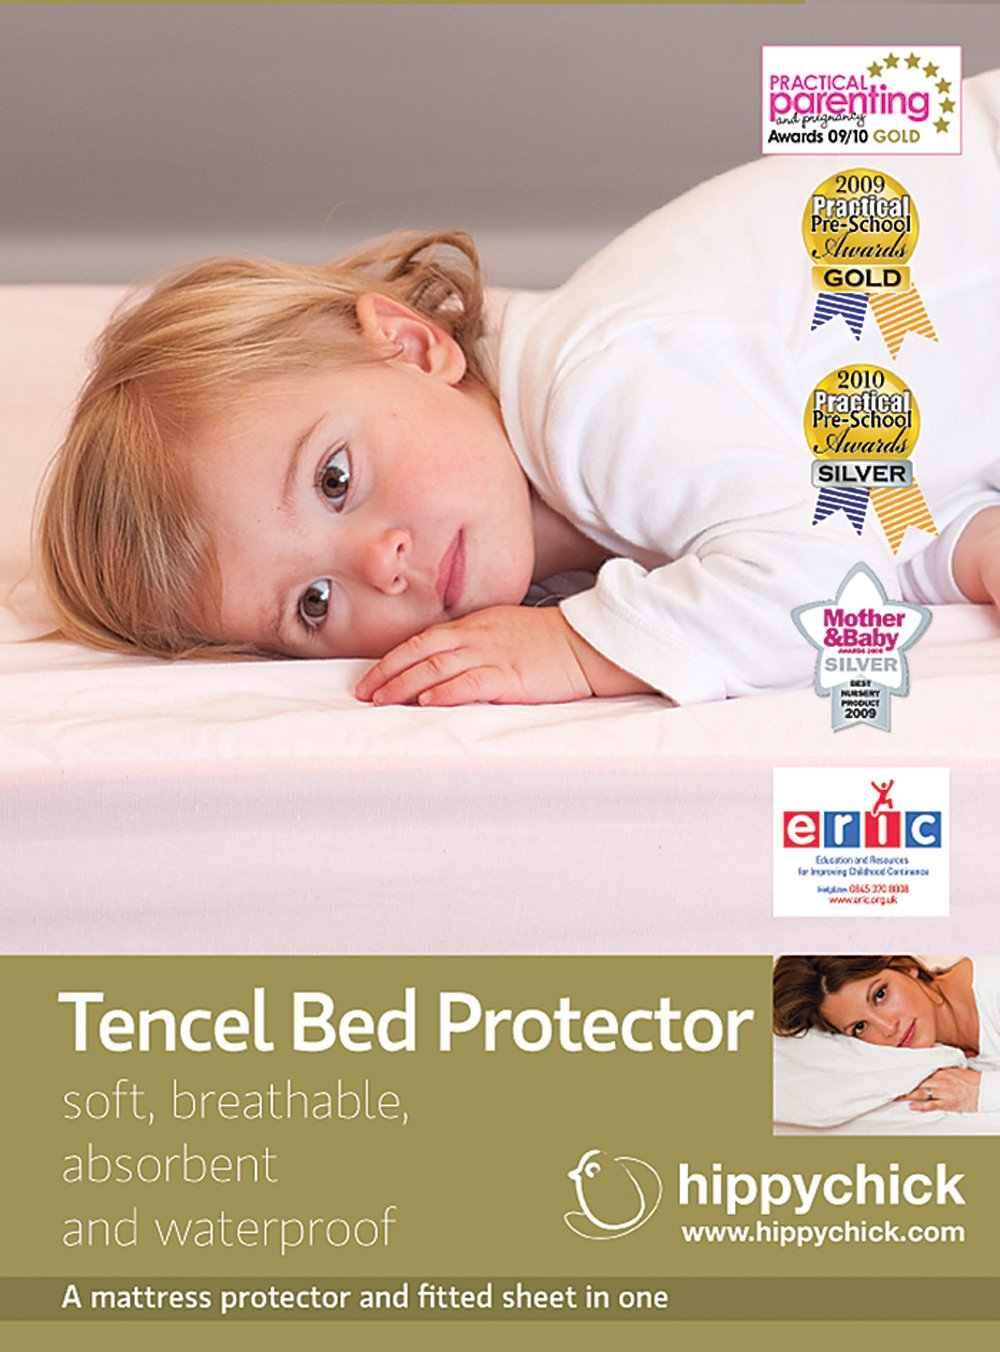 Hippychick Tencel Fitted Mattress Protector, 70 x 140 cm Cot/Bed - Pale Lemon HCTBP1CPYL